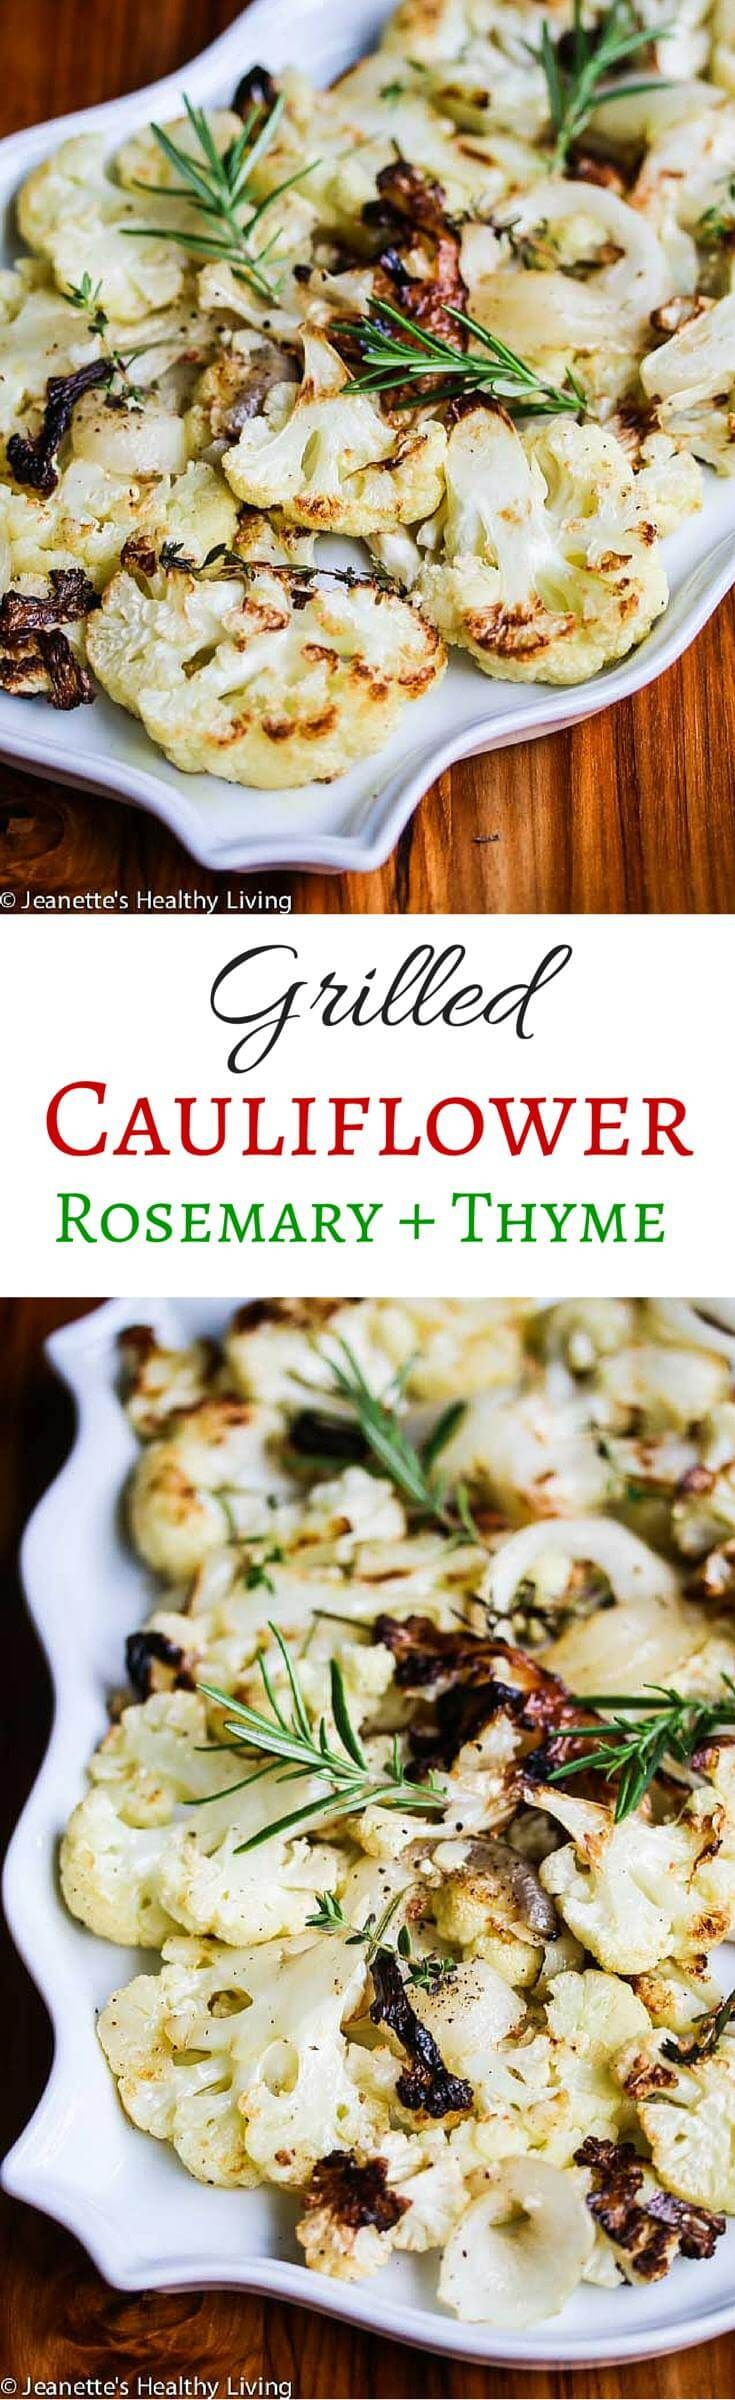 Grilled Cauliflower with Rosemary and Thyme Recipes - this is a simple and delicious Summer side dish scented with fresh herbs ~ http://jeanetteshealthyliving.com